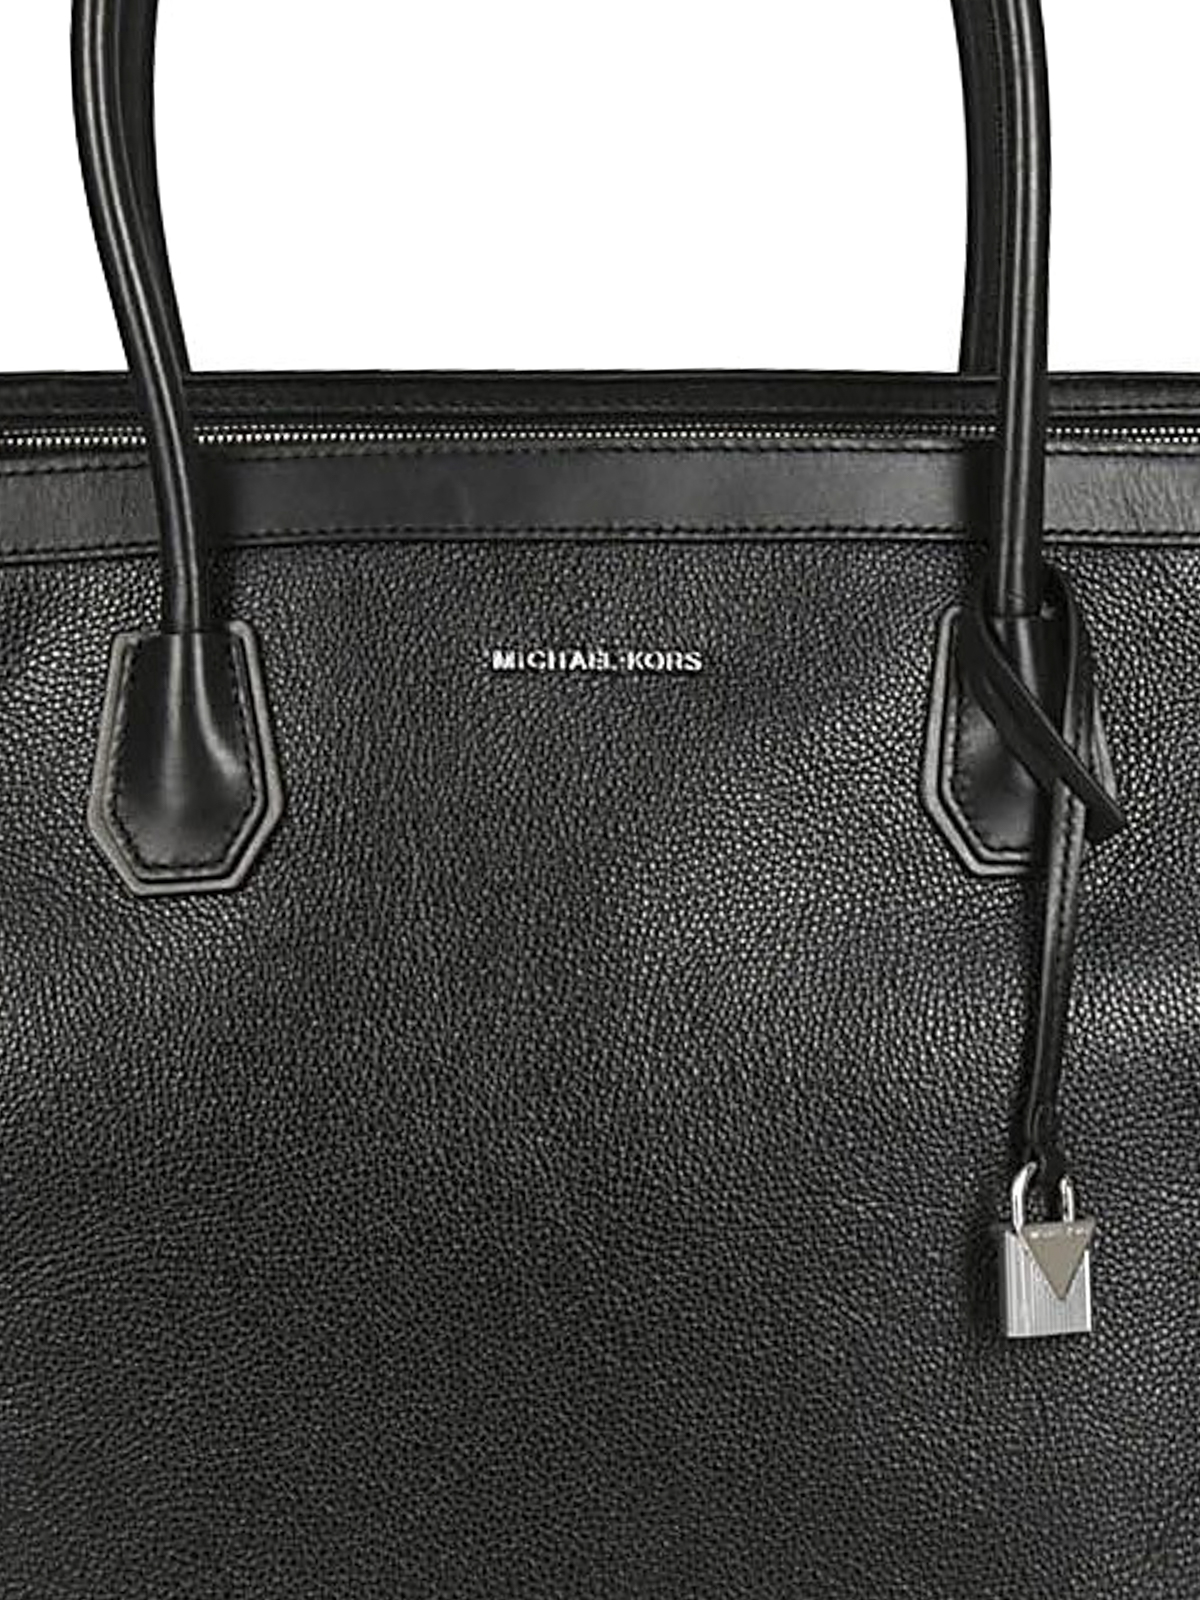 a902580537be Michael Kors - Mercer Studio L black leather tote - totes bags ...